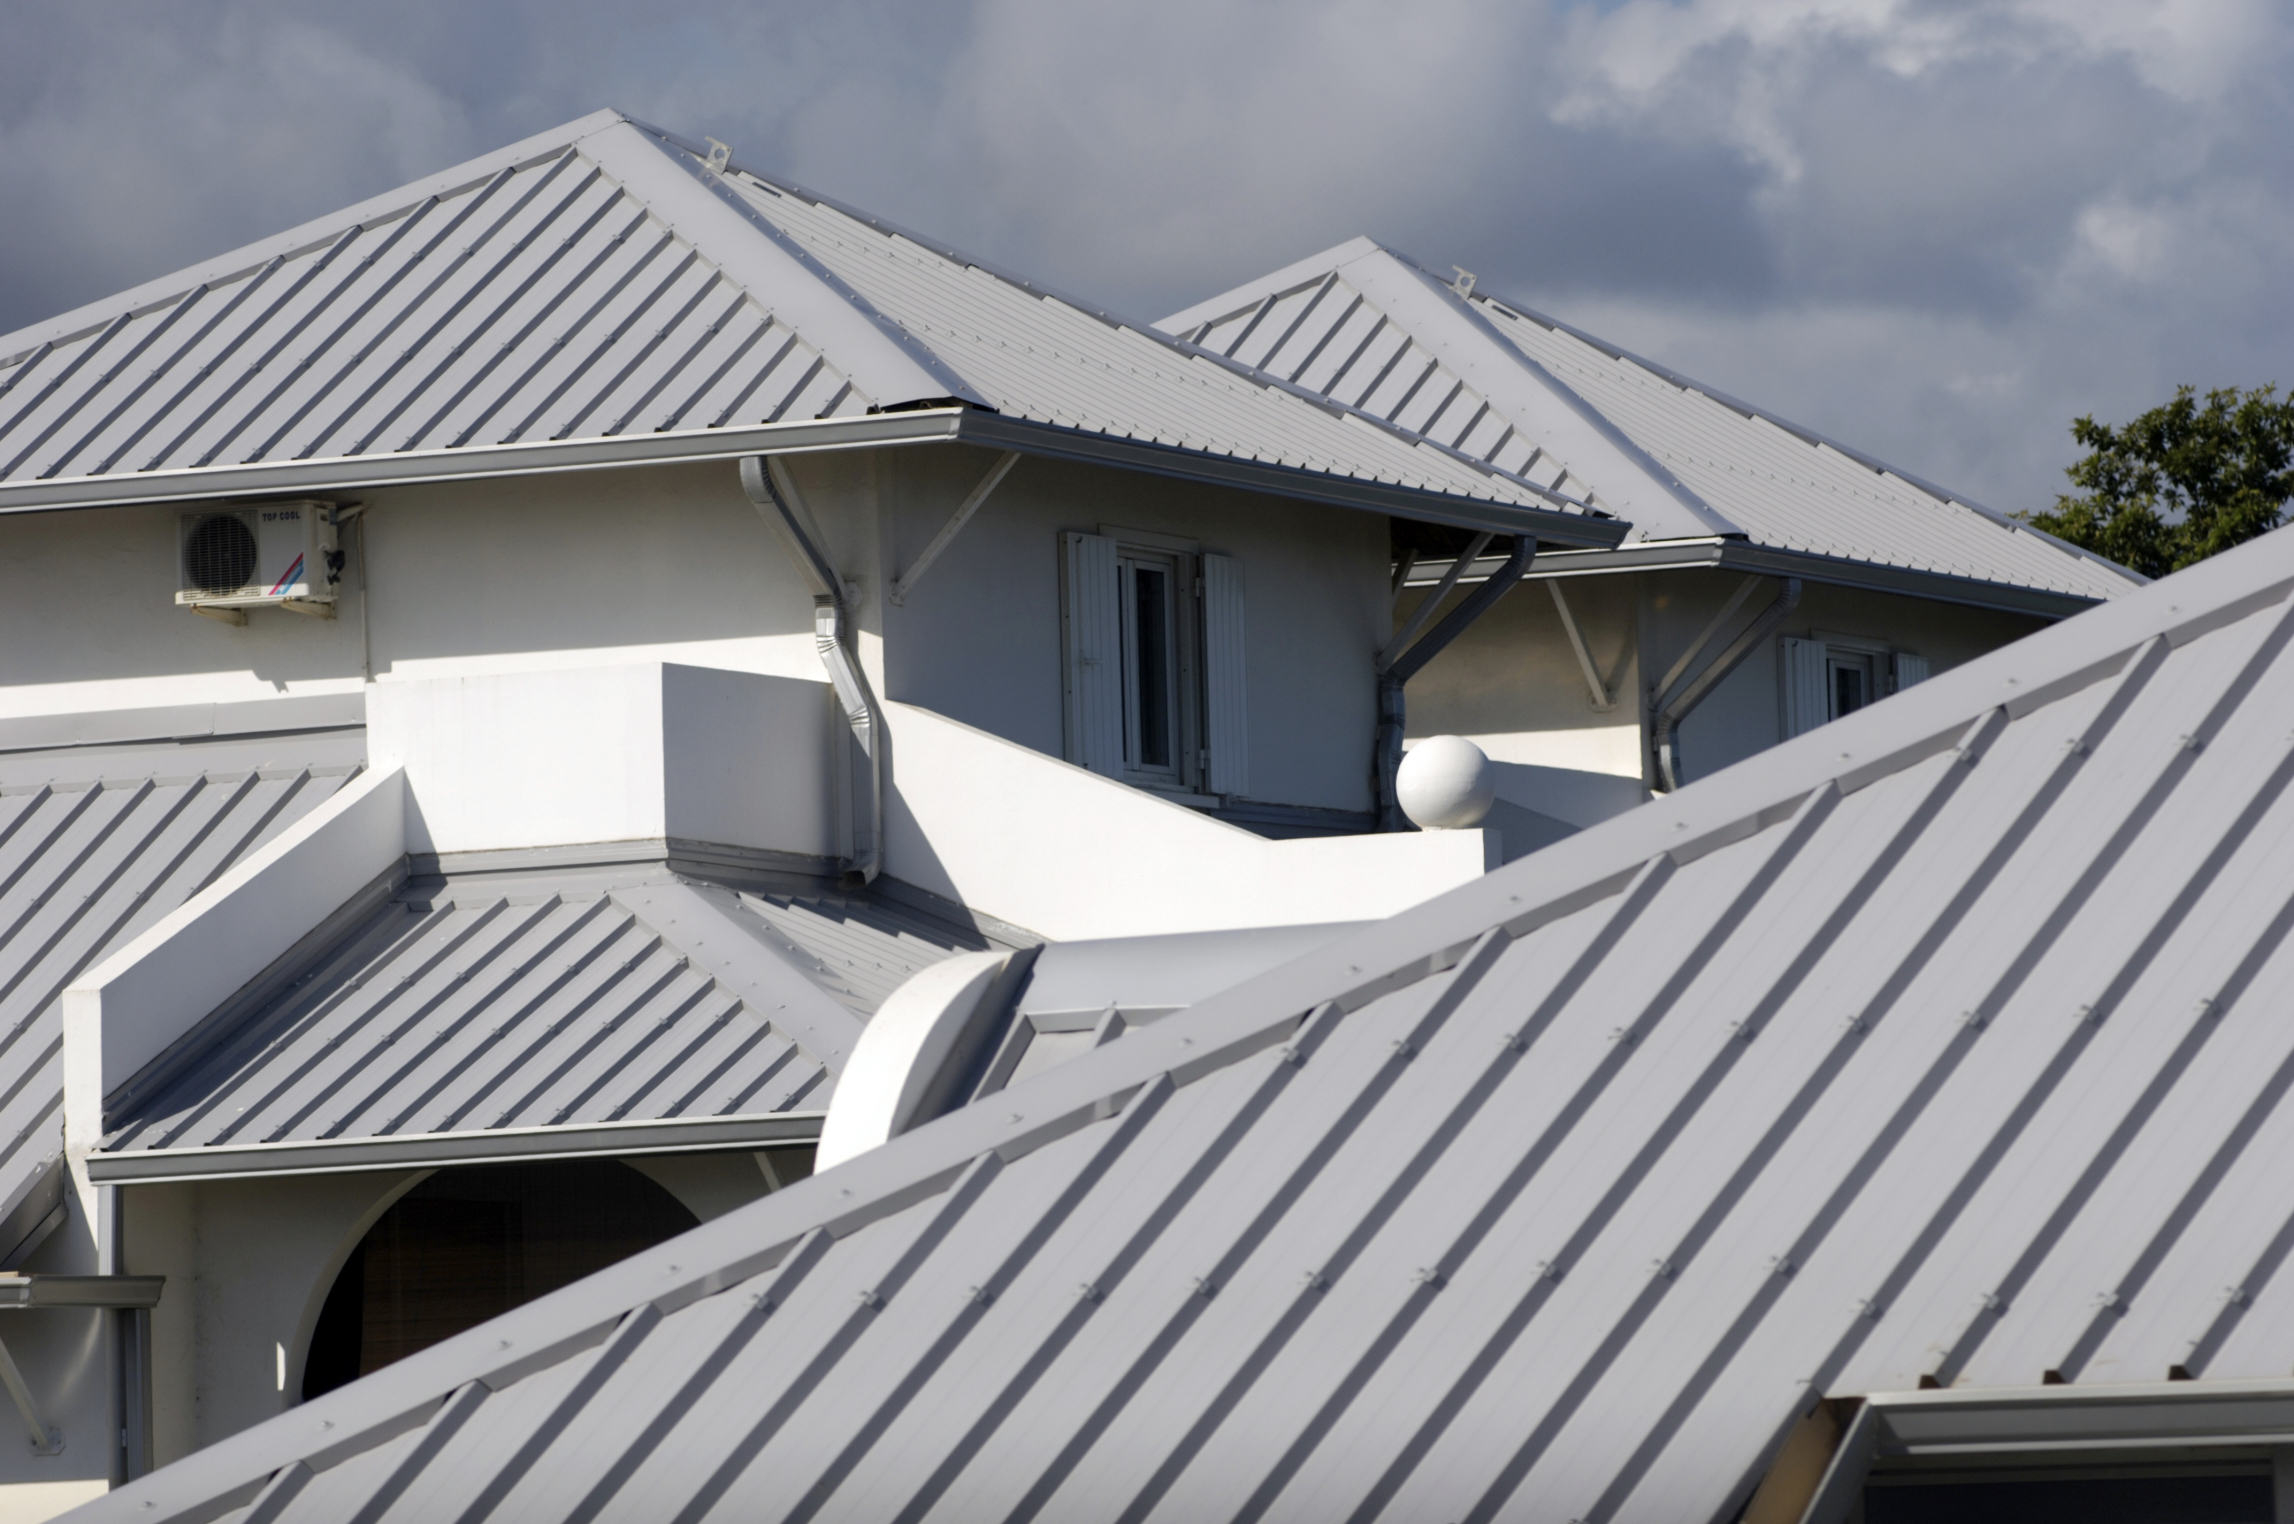 Colorbond sheets brisbane - What Other Advantages Can You Get From Colorbond Roofing